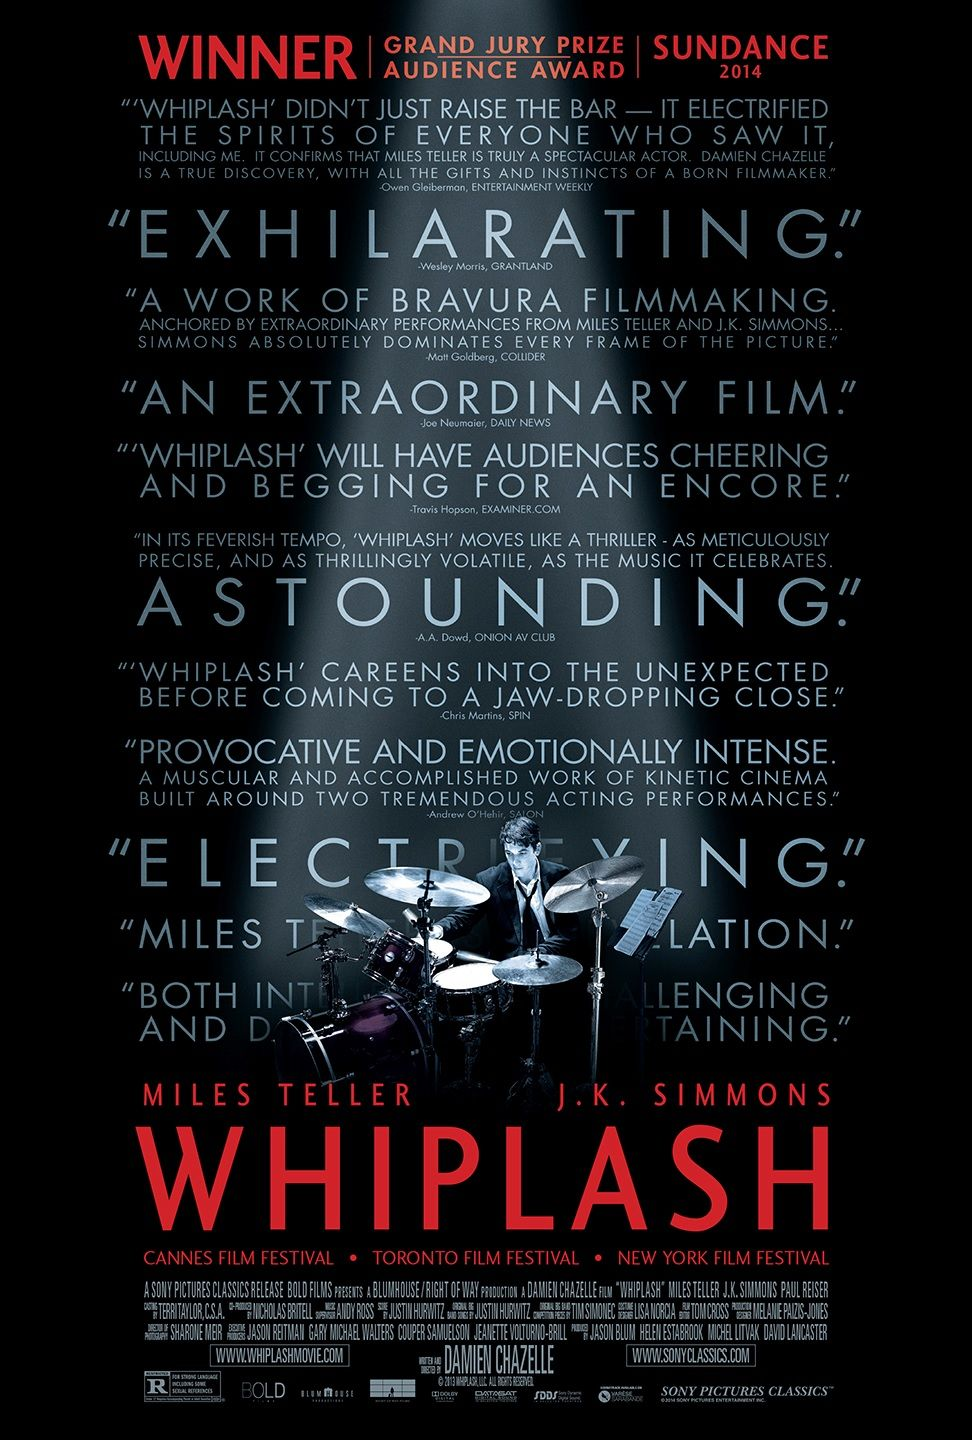 Whiplash - Movie Poster - Top 10 Films 2015